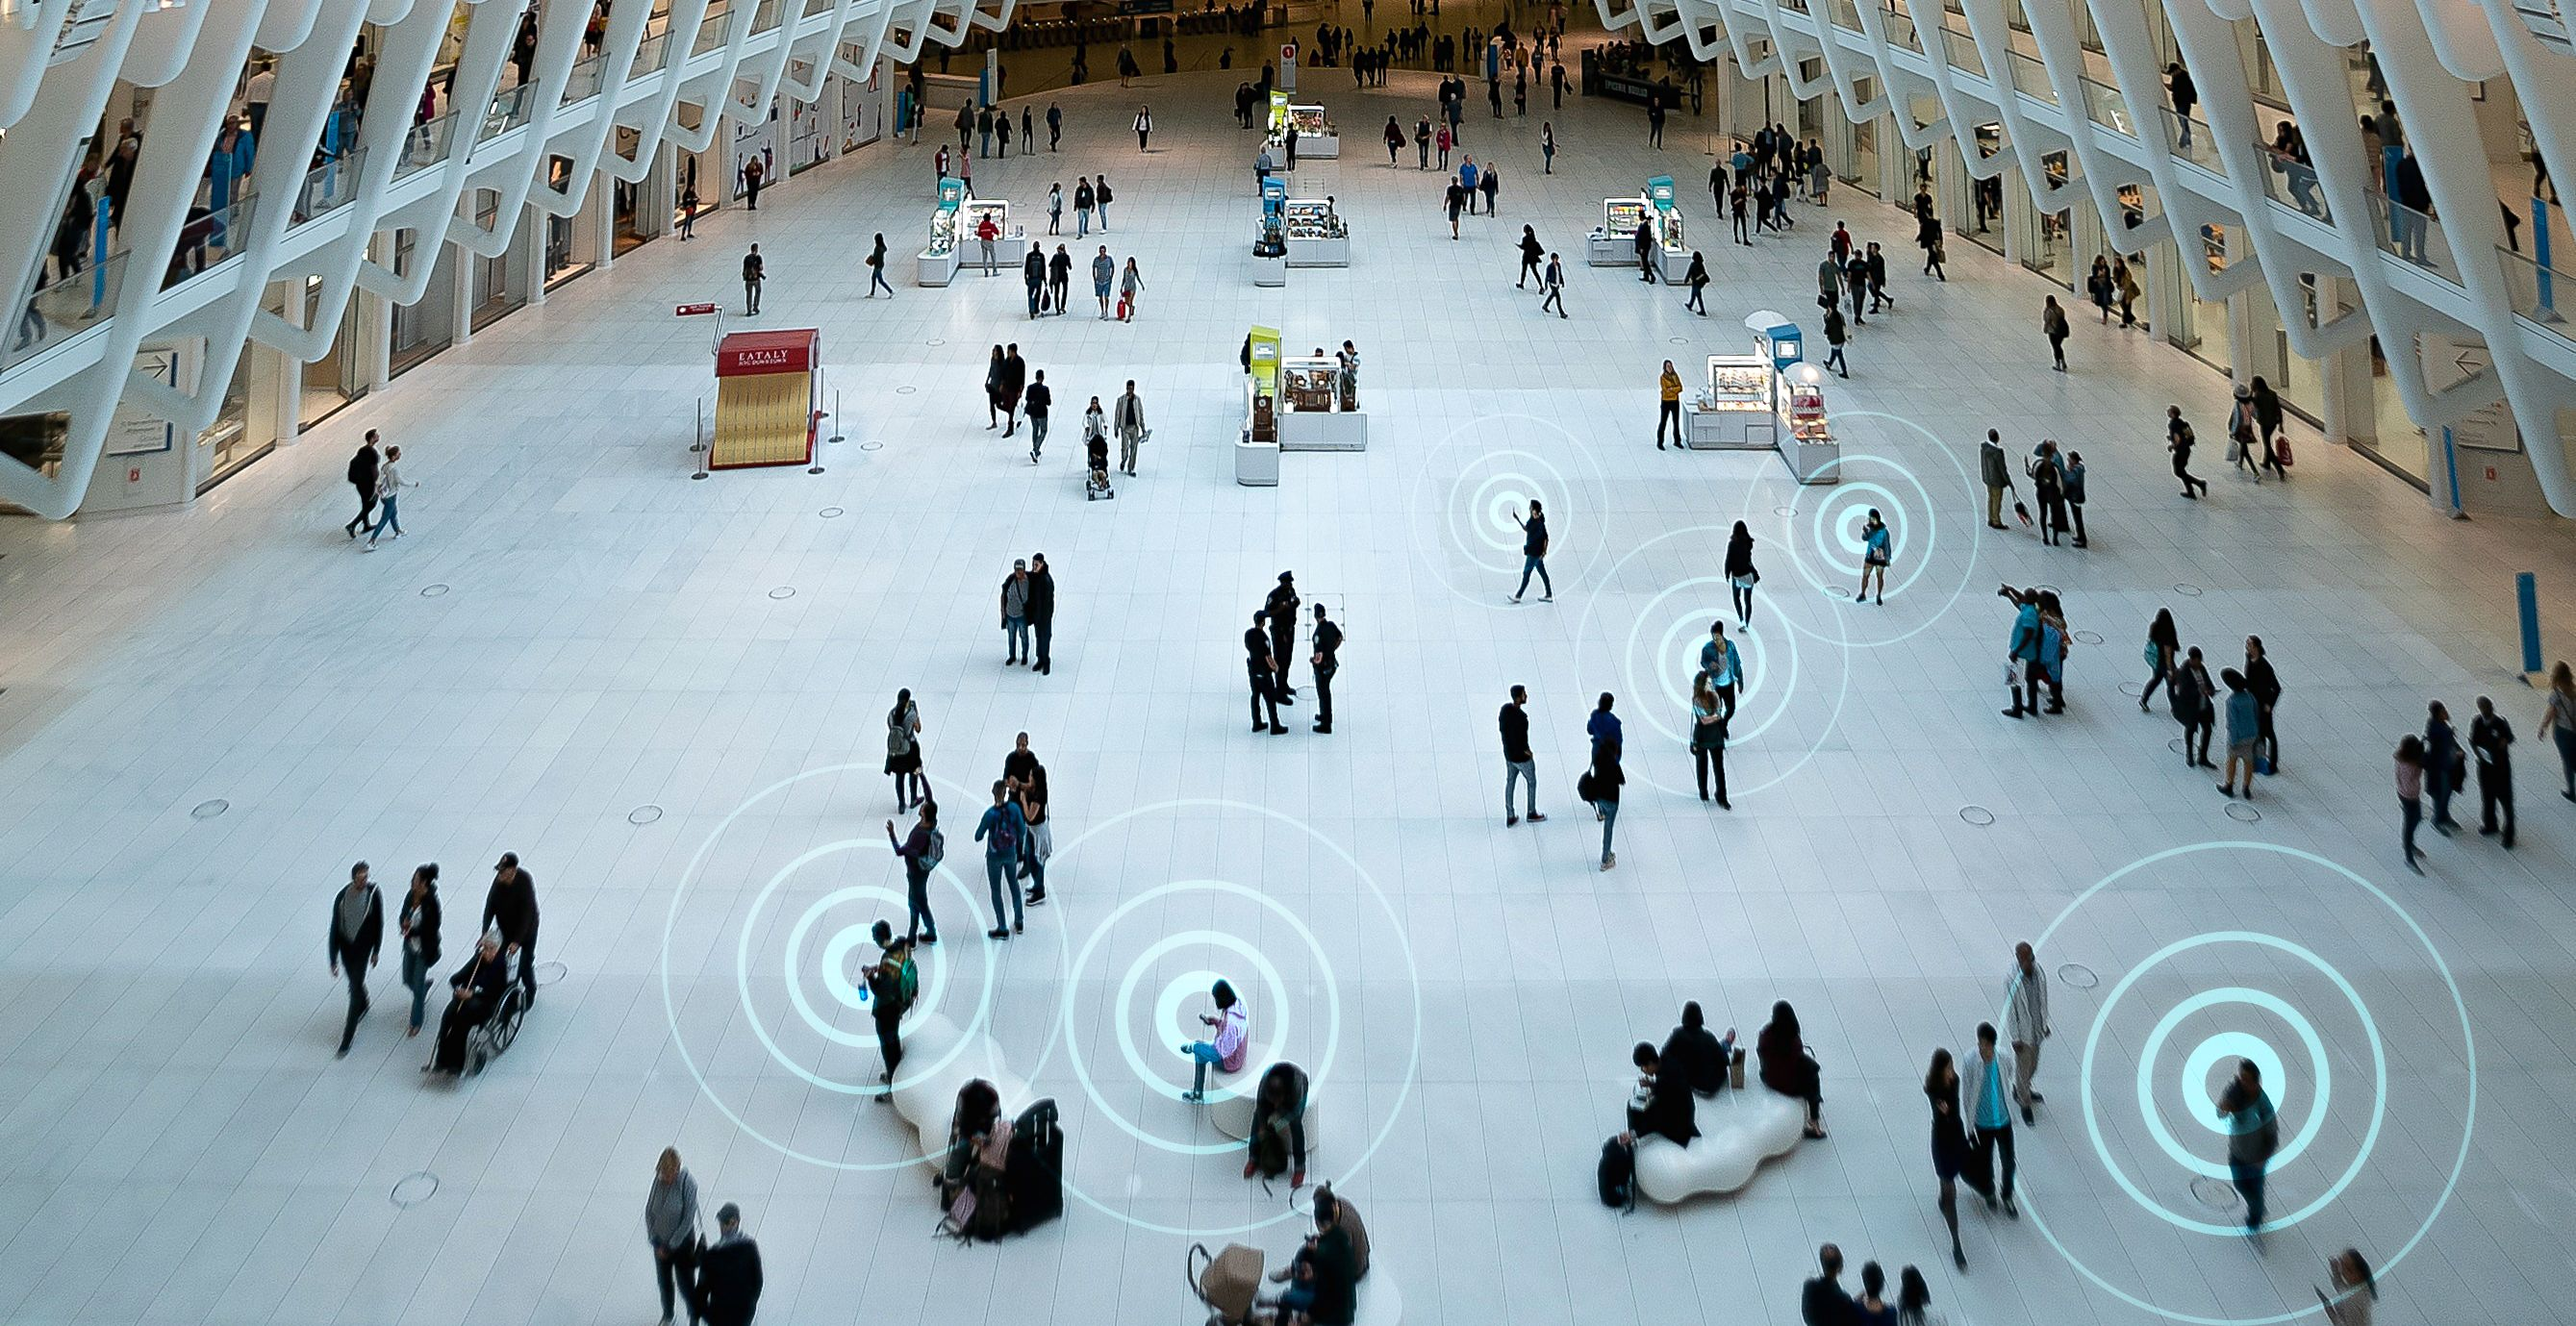 /leveraging-bluetooth-indoor-positioning-technology-402f35de feature image